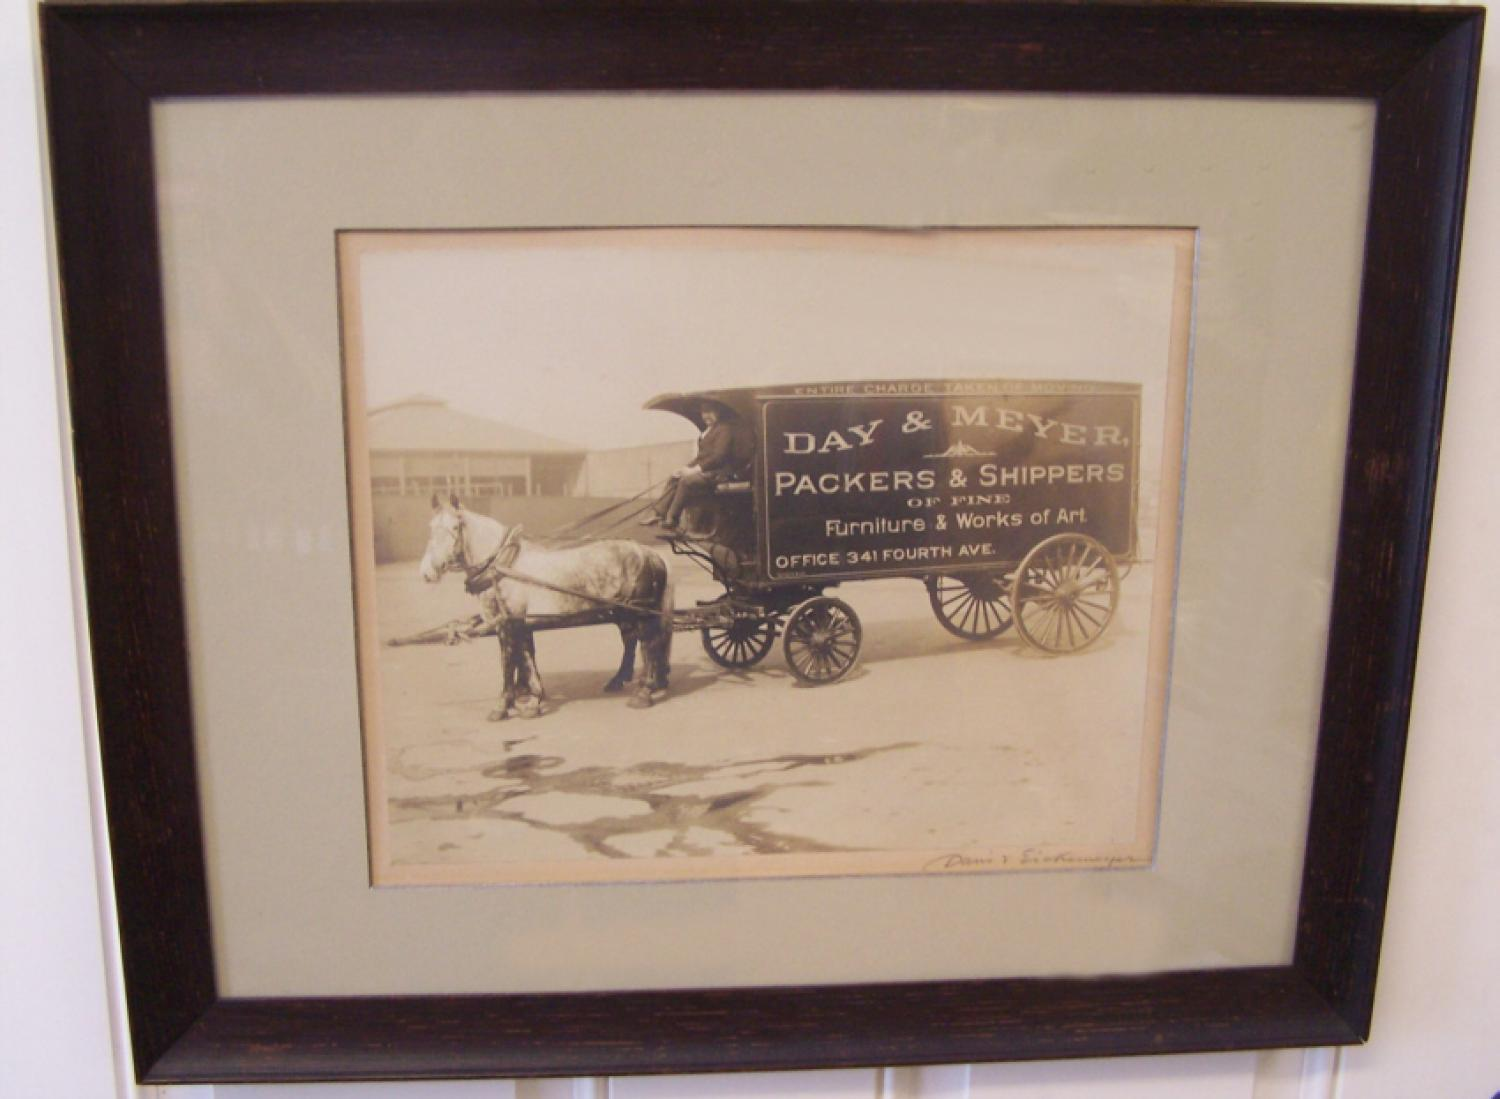 Day and Meyer Packers and Shippers photo by Davis and Eickemeyer c1900